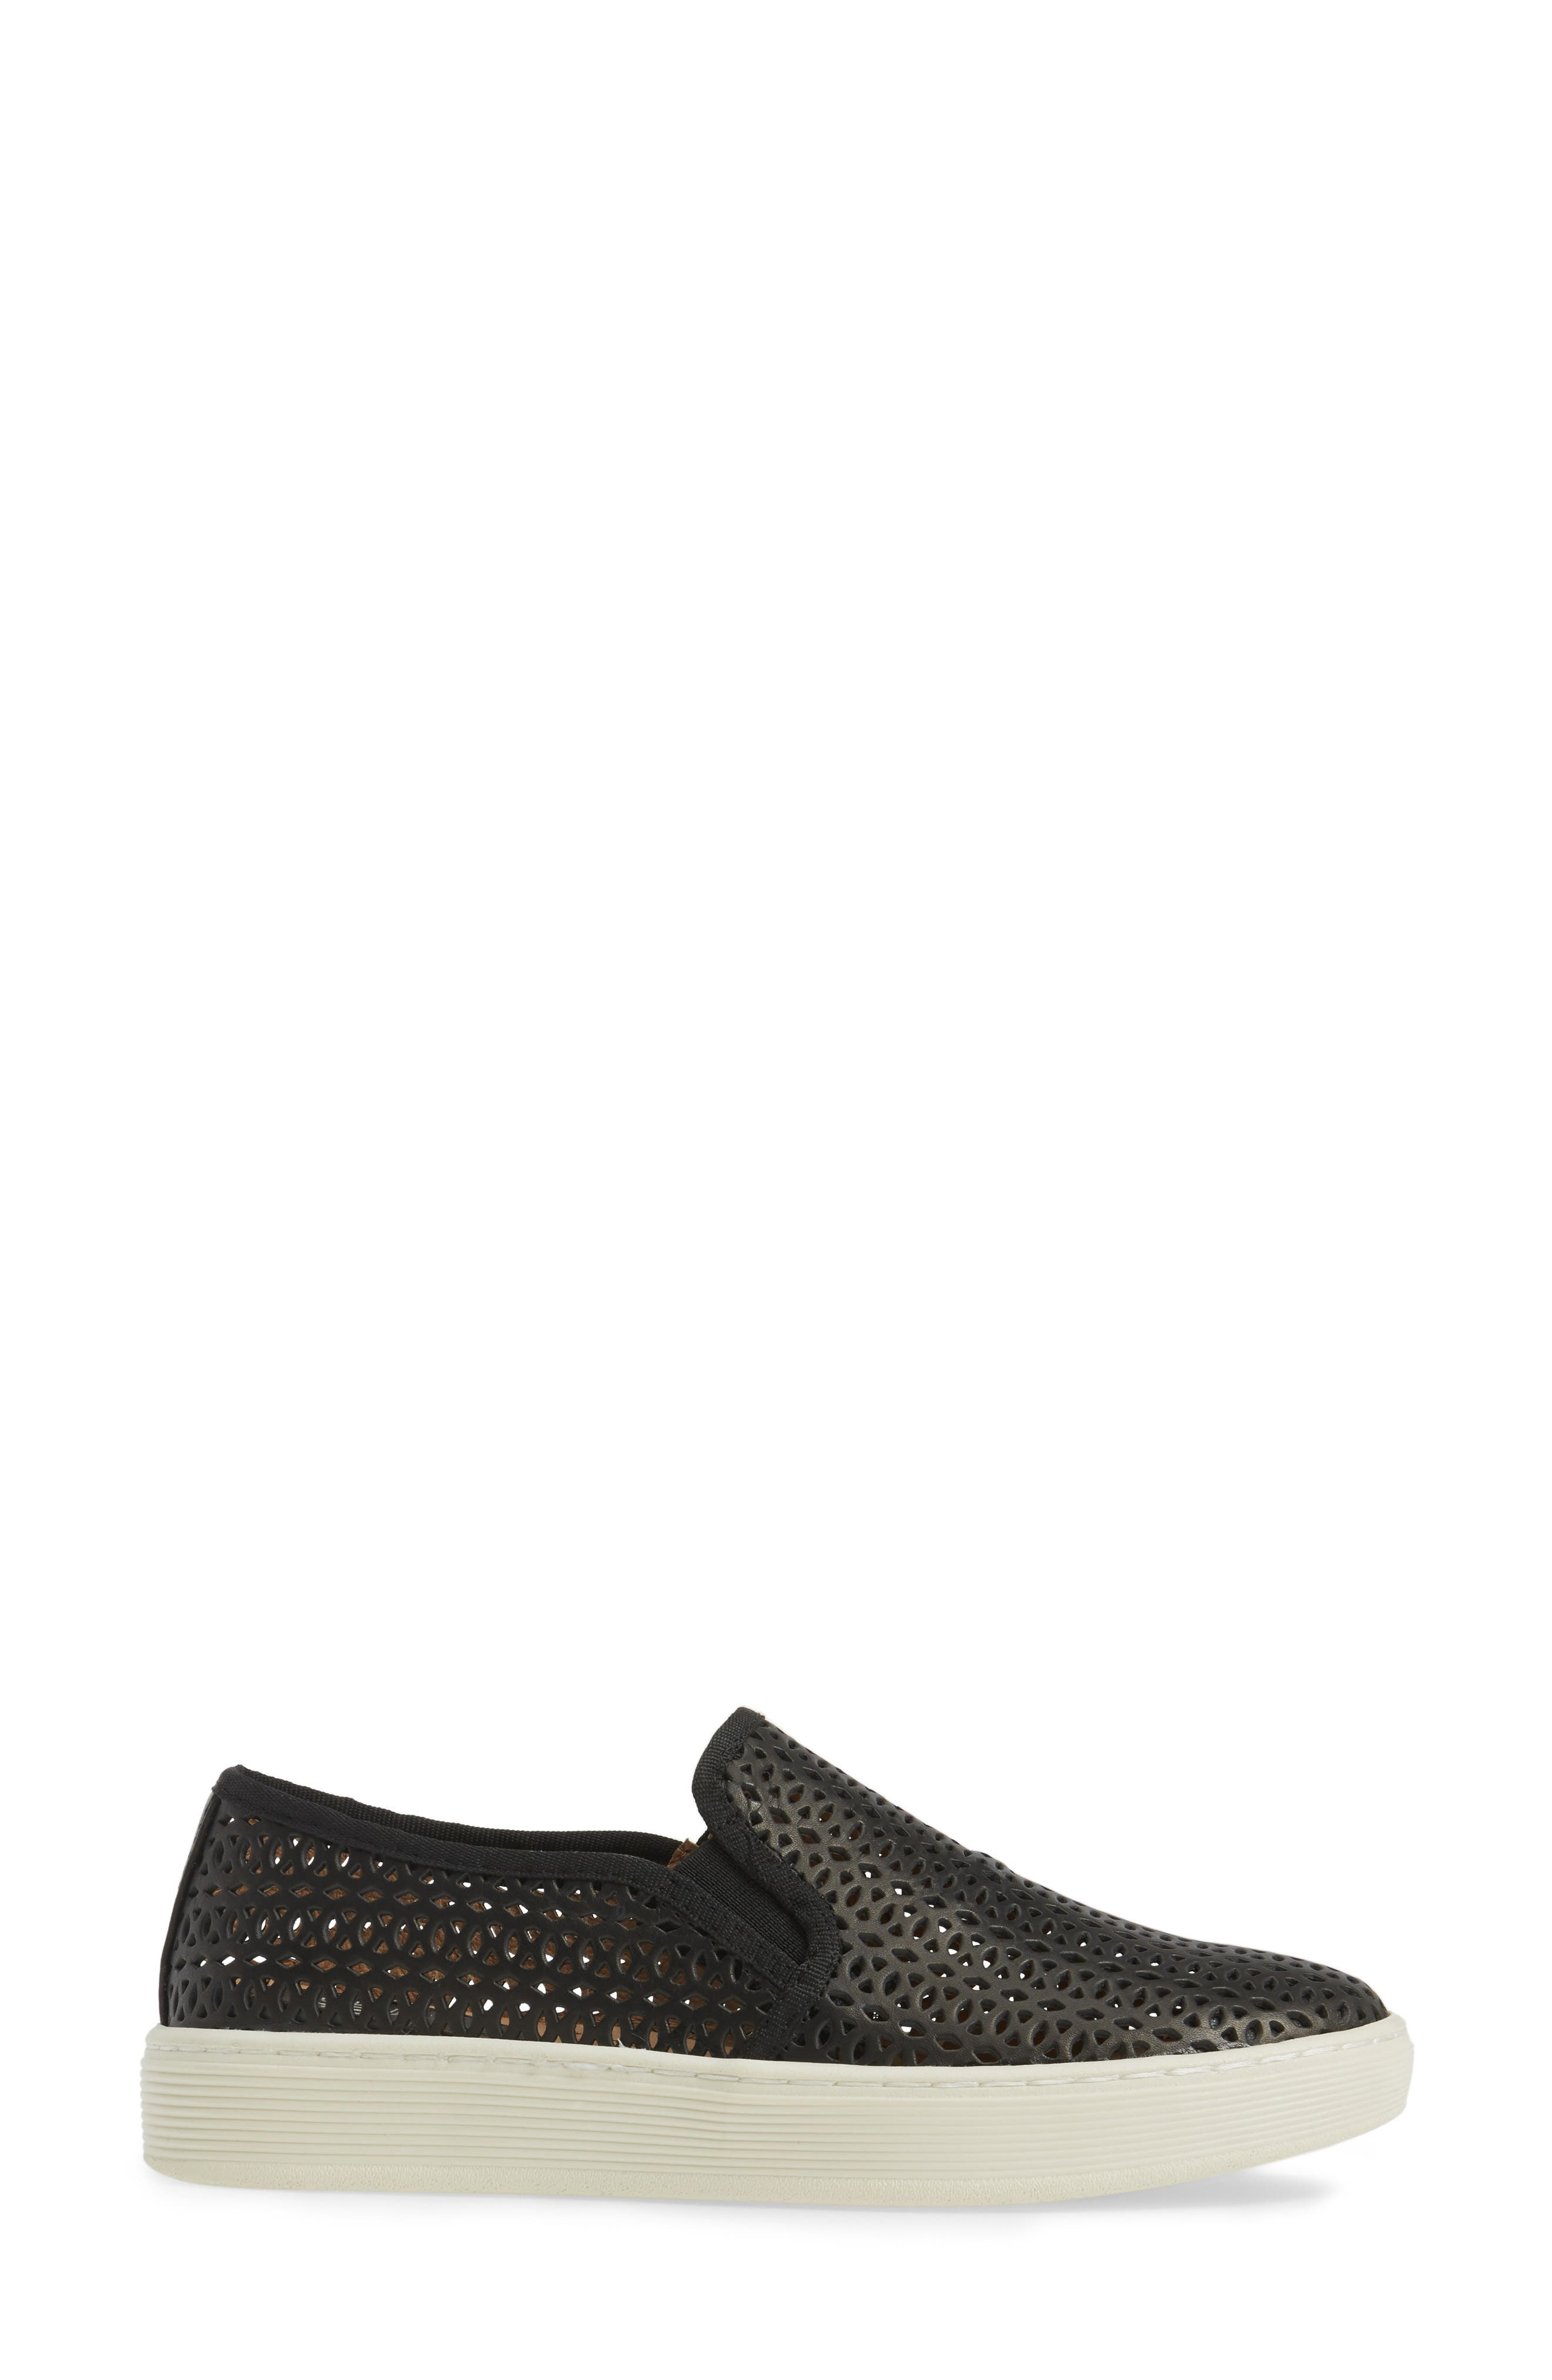 Somers II Slip-on Sneaker,                             Alternate thumbnail 3, color,                             Black Perforated Leather